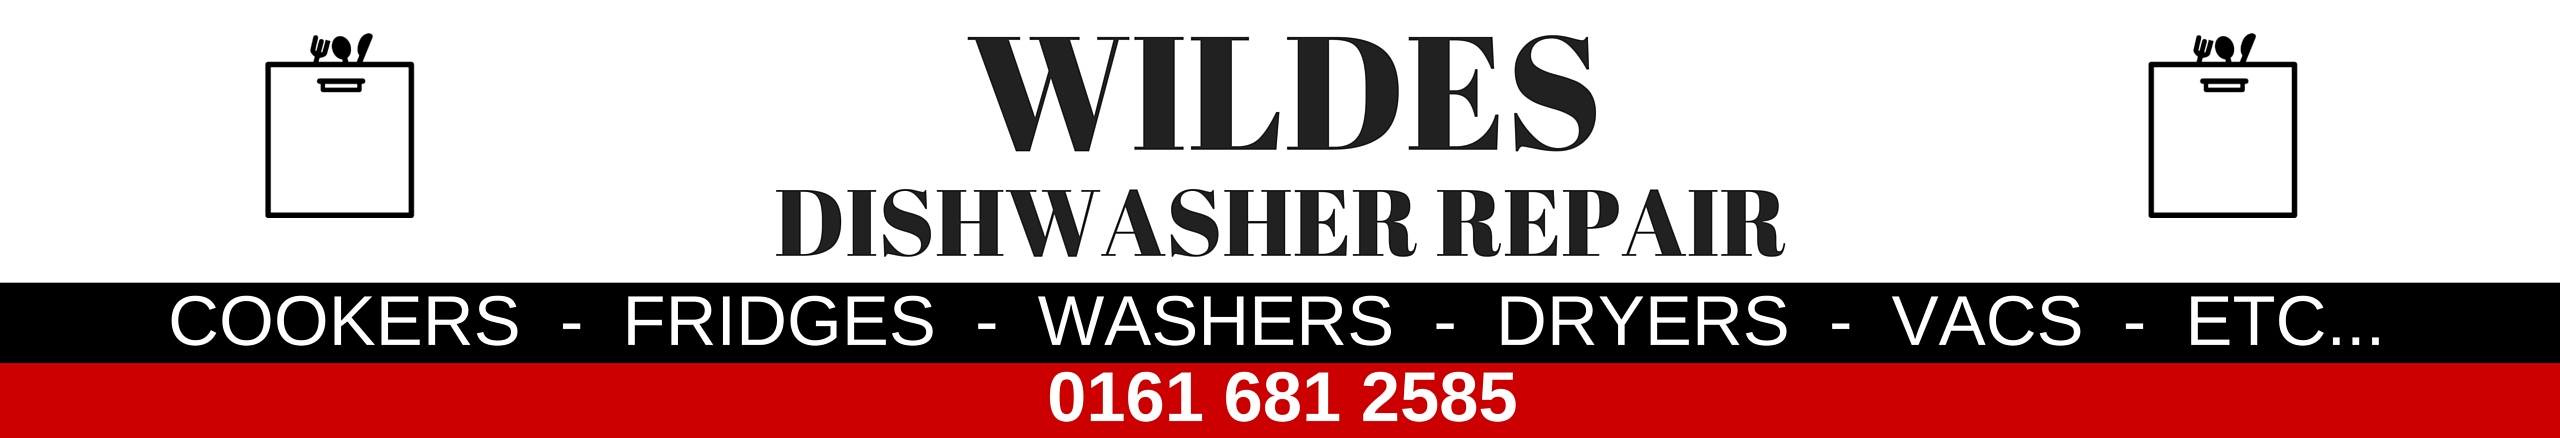 Dishwasher repair in chadderton